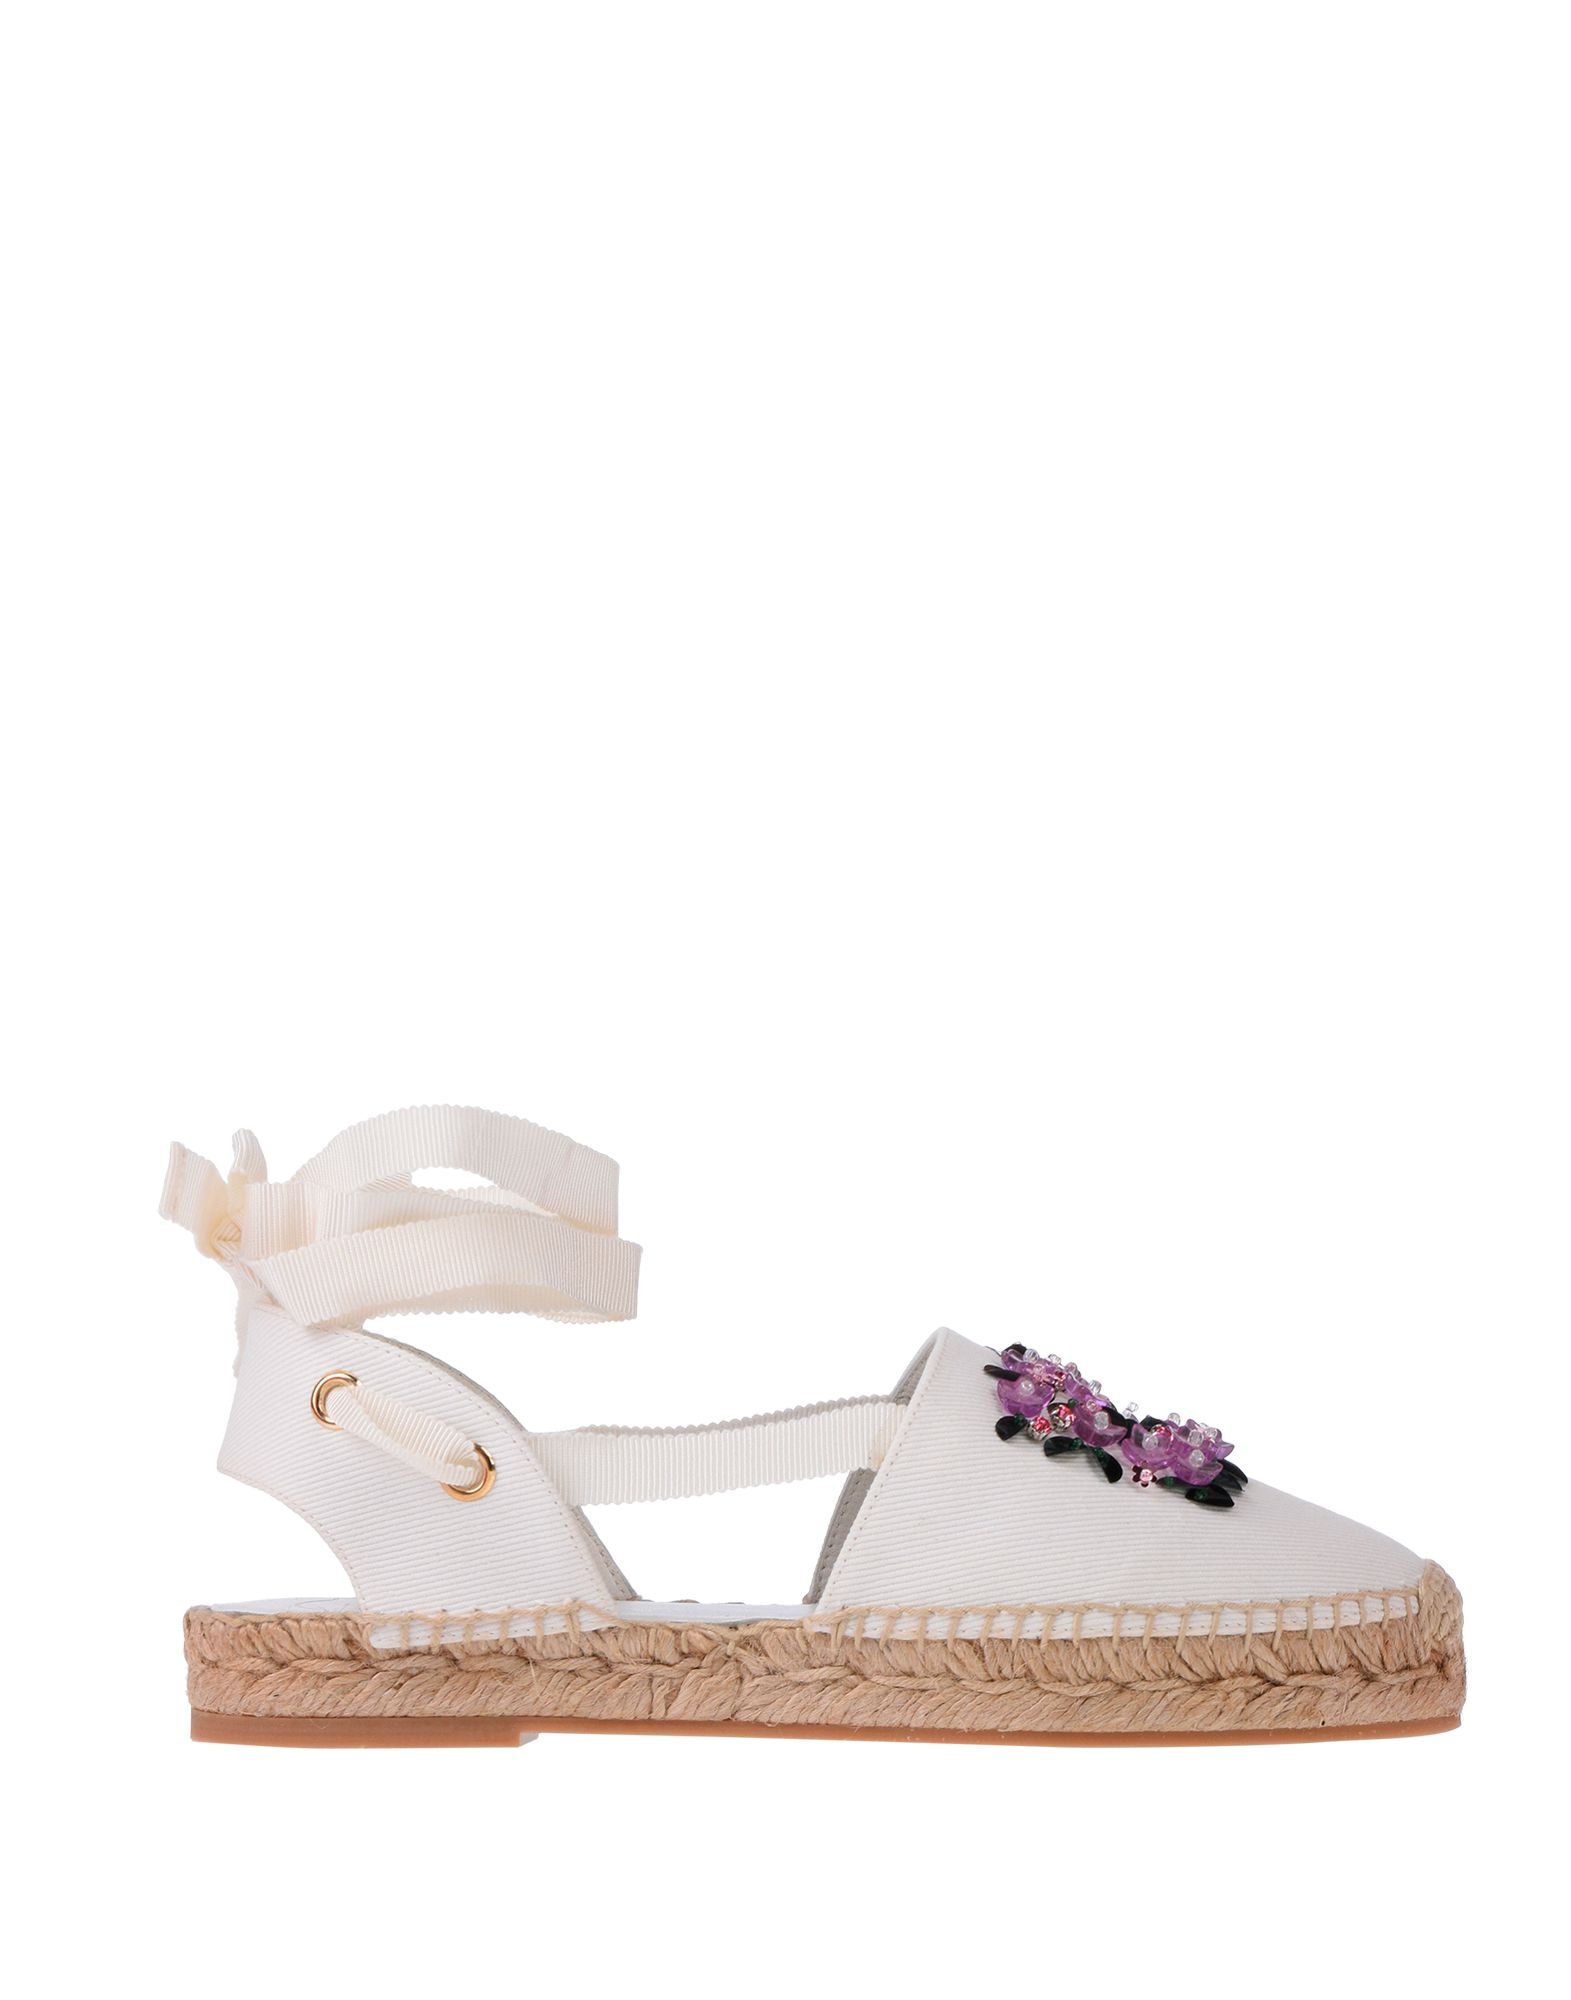 ROGER VIVIER Espadrilles. beads, solid color, wrapping straps closure, round toeline, flatform, rope heel, leather lining, rubber sole, contains non-textile parts of animal origin. Textile fibers